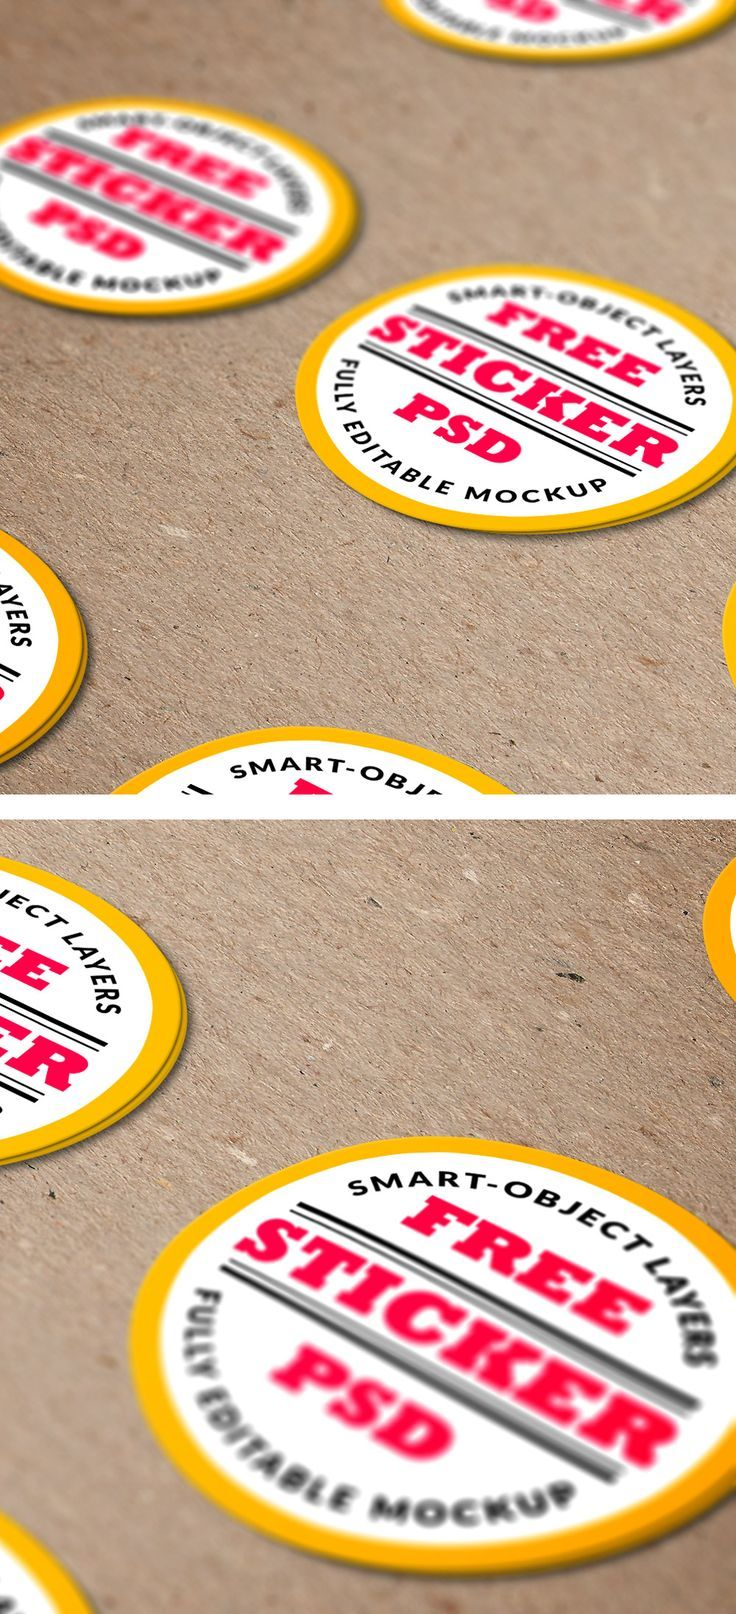 Car sticker design download - Tweetsumomefriends Today S Freebie Is A Stickers Mockup Psd Ideal For Presenting Your Sticker Design In A Very Realistic Environment With A Focus On A